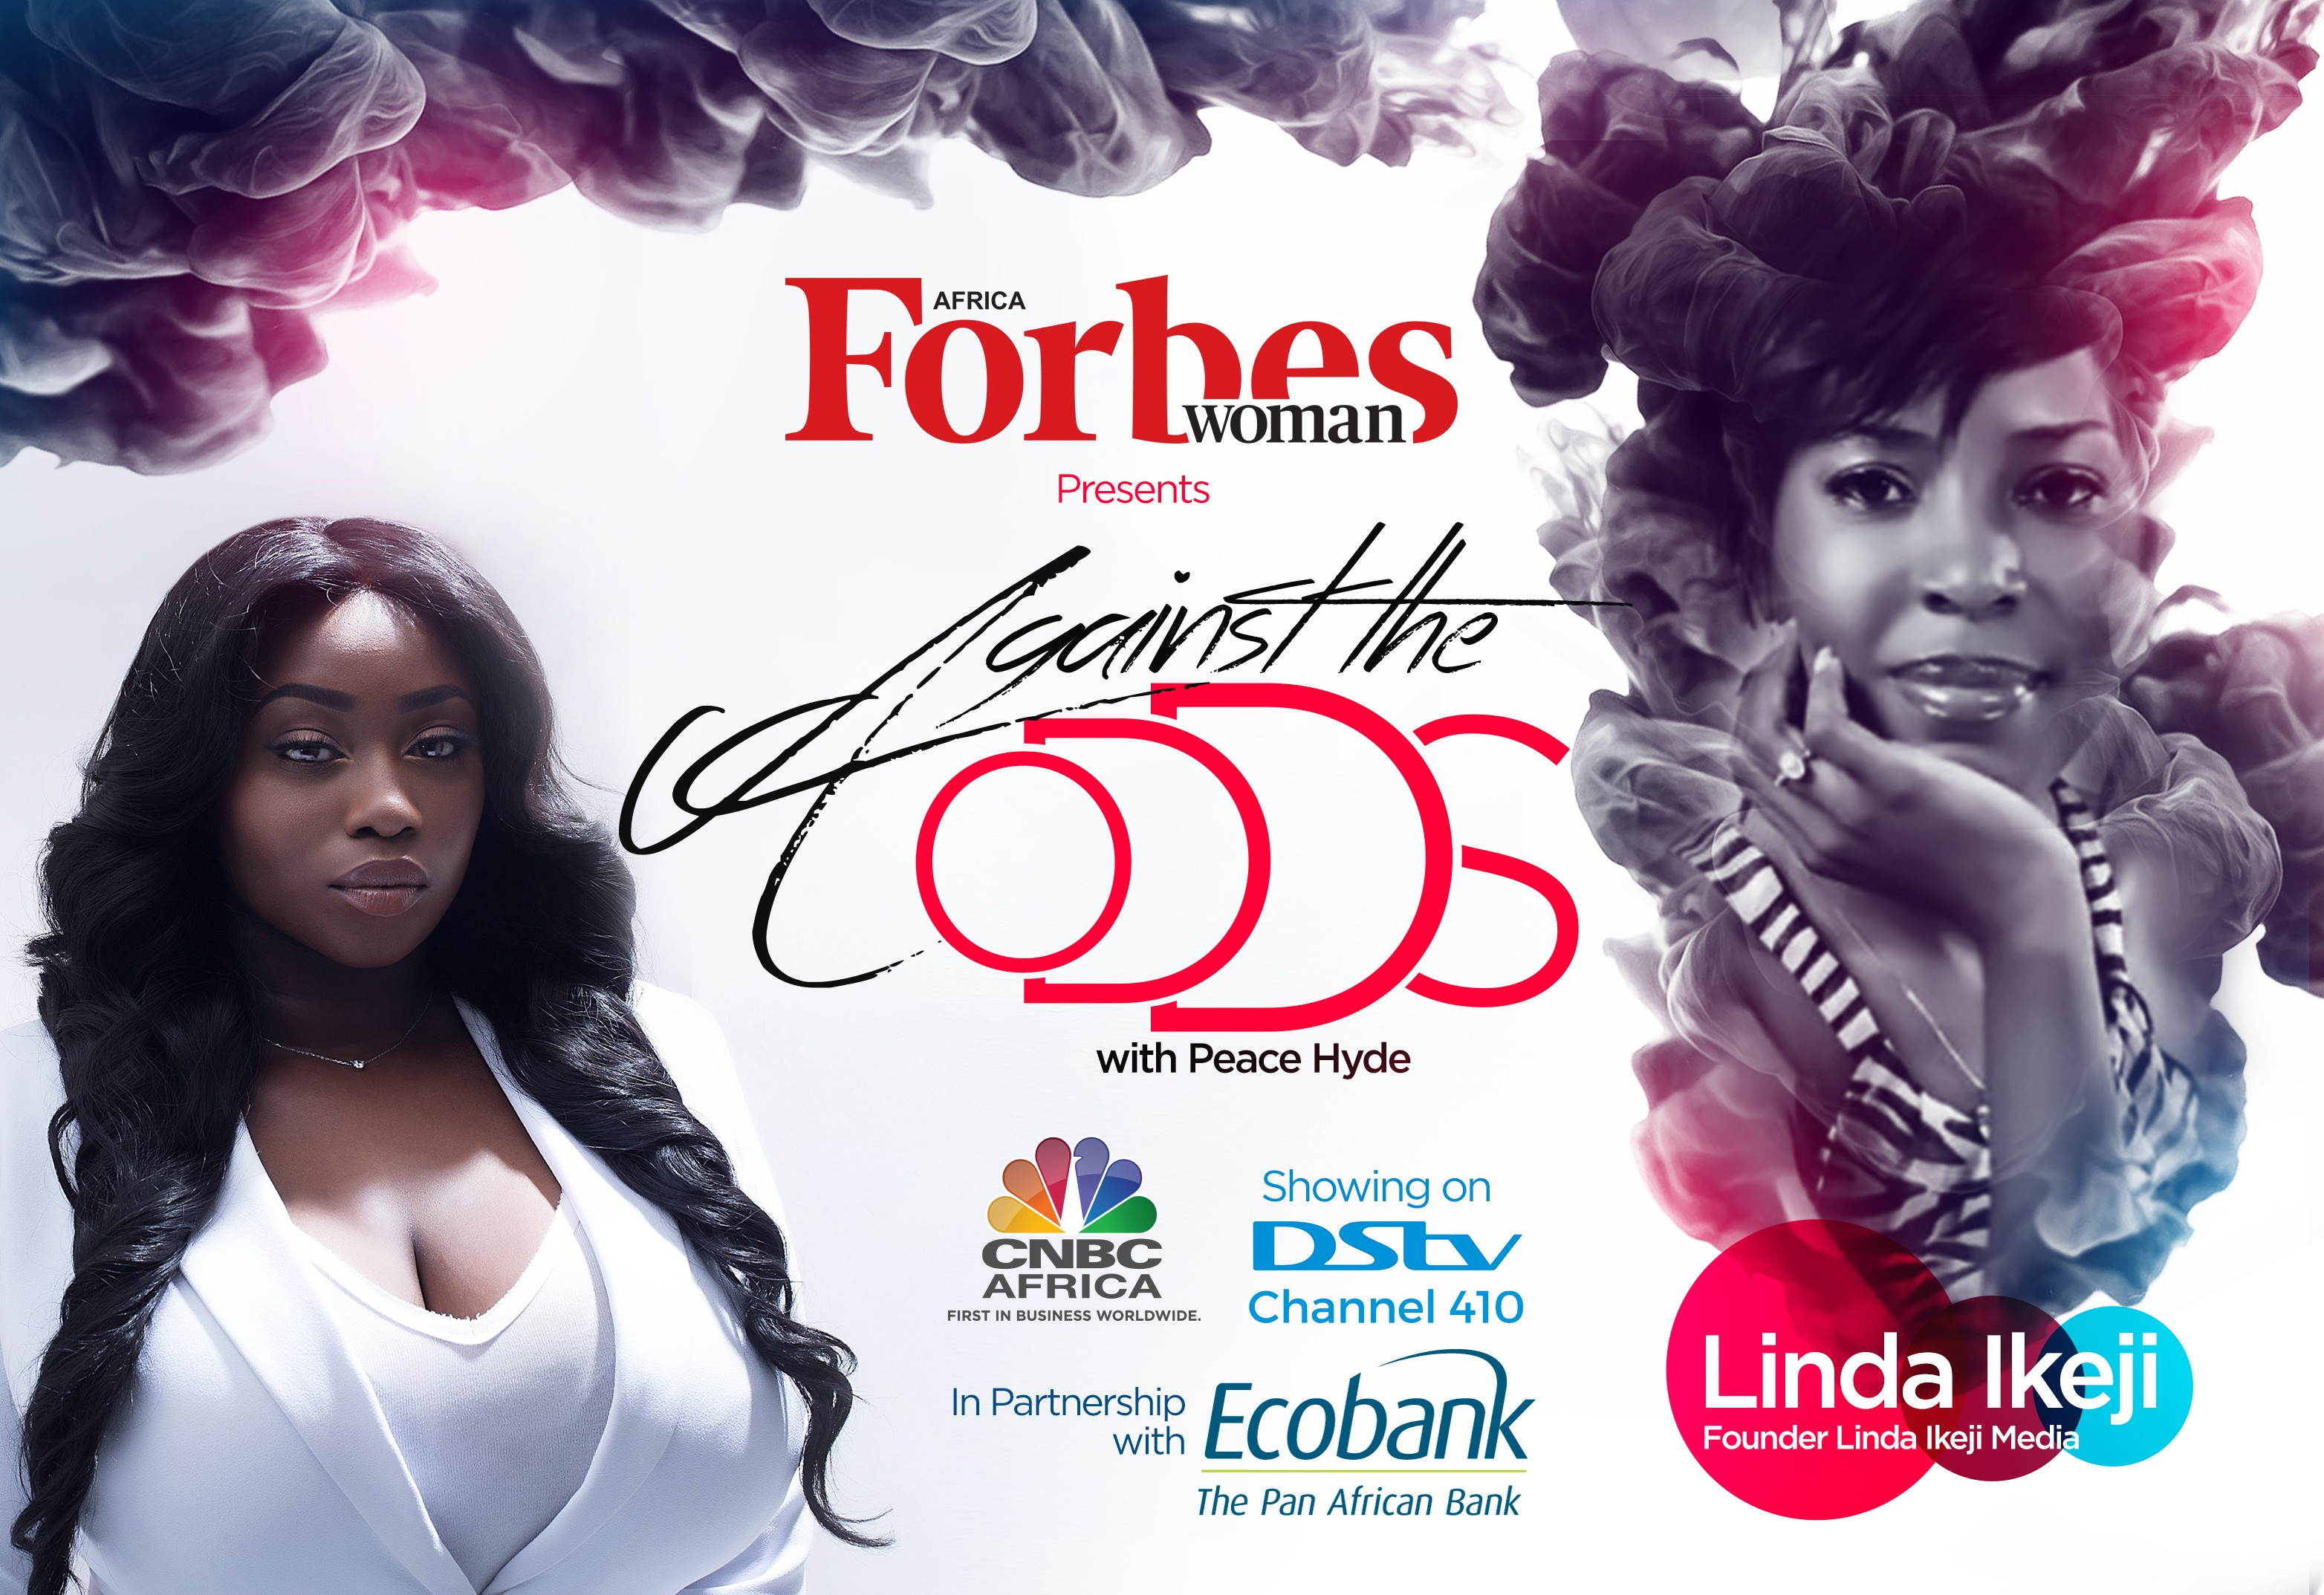 Linda Ikeji Opens Up To Peace Hyde About The Perils Of Building A Successful Brand Against All Odds